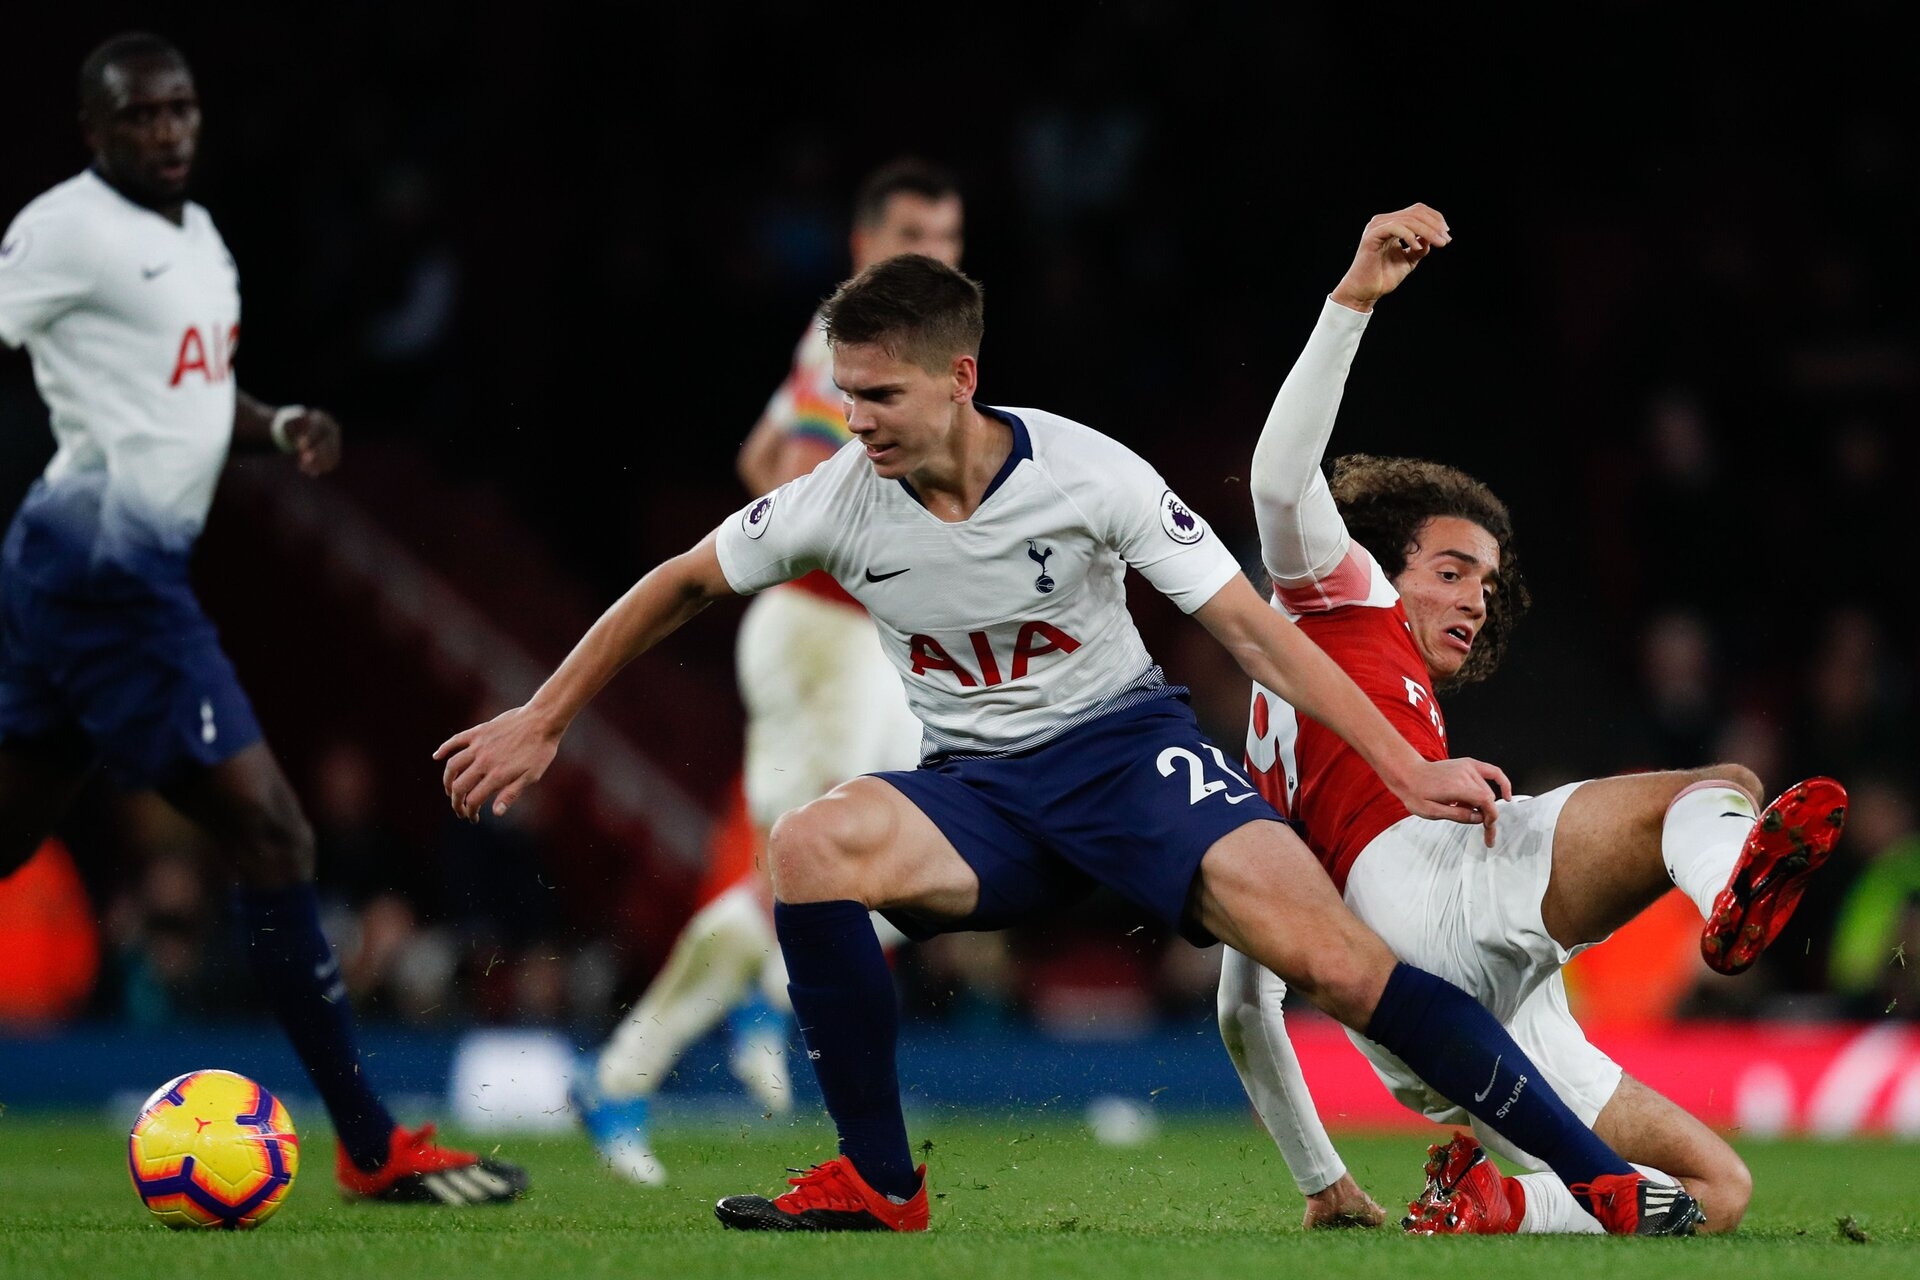 Tottenham Hotspur's Argentinian defender Juan Foyth (C) vies with Arsenal's French midfielder Matteo Guendouzi (R) during the English Premier League football match between Arsenal and Tottenham Hotspur at the Emirates Stadium in London on December 2, 2018. (Photo by Adrian DENNIS / AFP) / RESTRICTED TO EDITORIAL USE. No use with unauthorized audio, video, data, fixture lists, club/league logos or 'live' services. Online in-match use limited to 120 images. An additional 40 images may be used in extra time. No video emulation. Social media in-match use limited to 120 images. An additional 40 images may be used in extra time. No use in betting publications, games or single club/league/player publications. /         (Photo credit should read ADRIAN DENNIS/AFP/Getty Images)